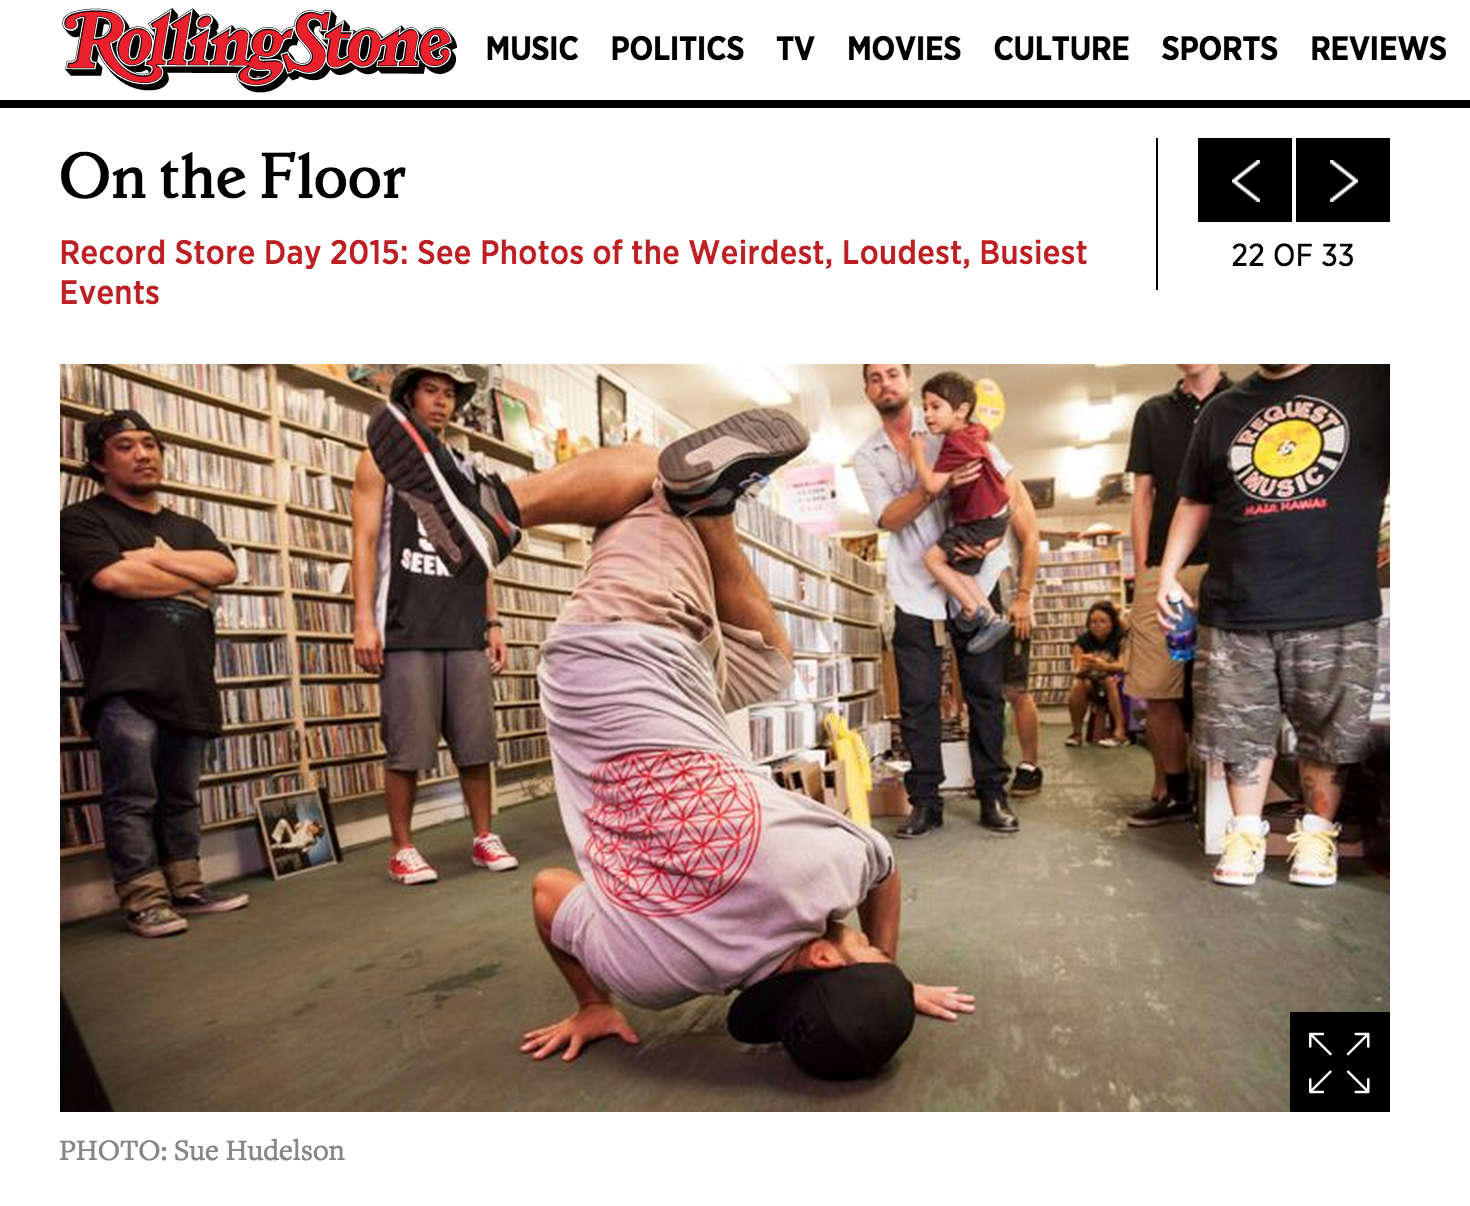 Rolling Stone featured Request Music on Record Store Day 2015.